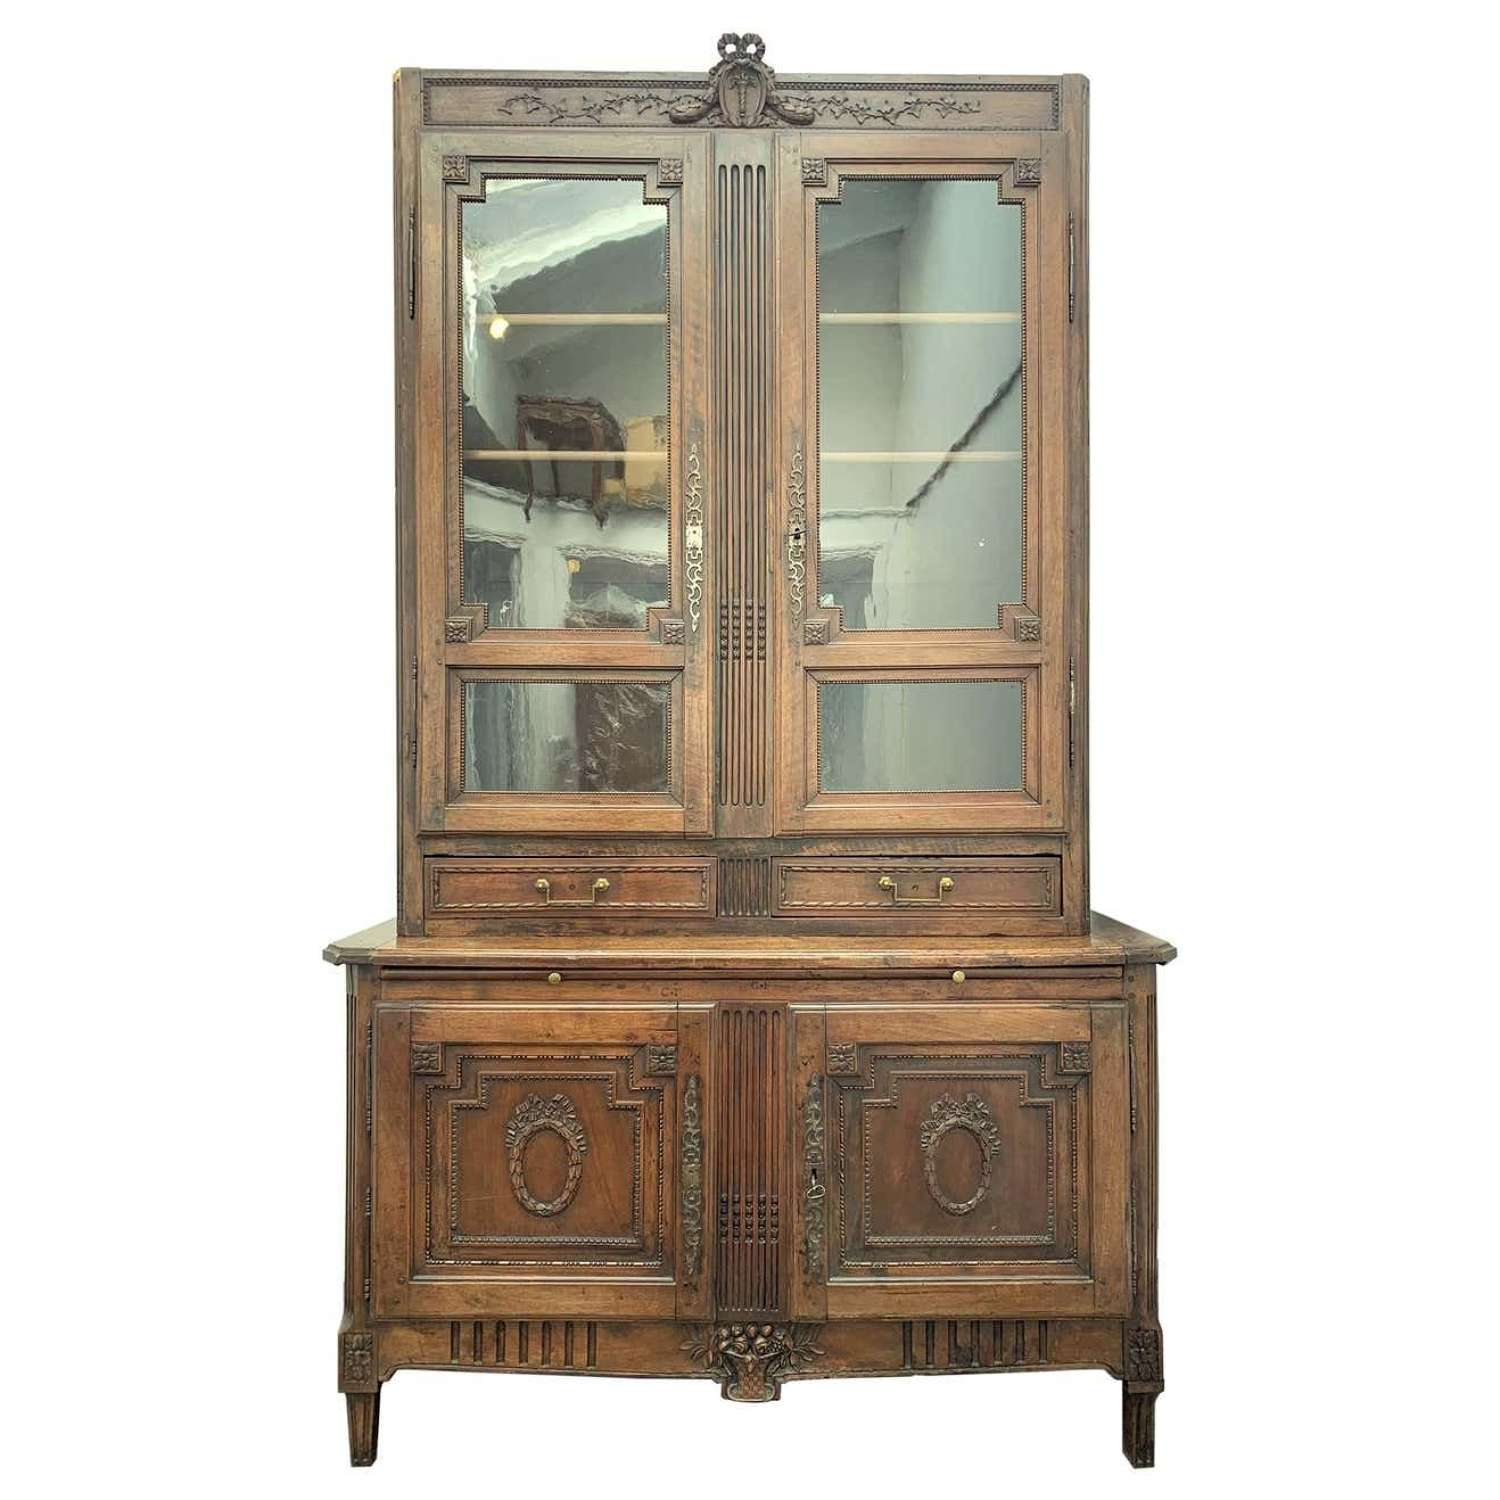 Antique Bibliotheque by F. C. Menant, Louis XVI Style 18th Century, Fr